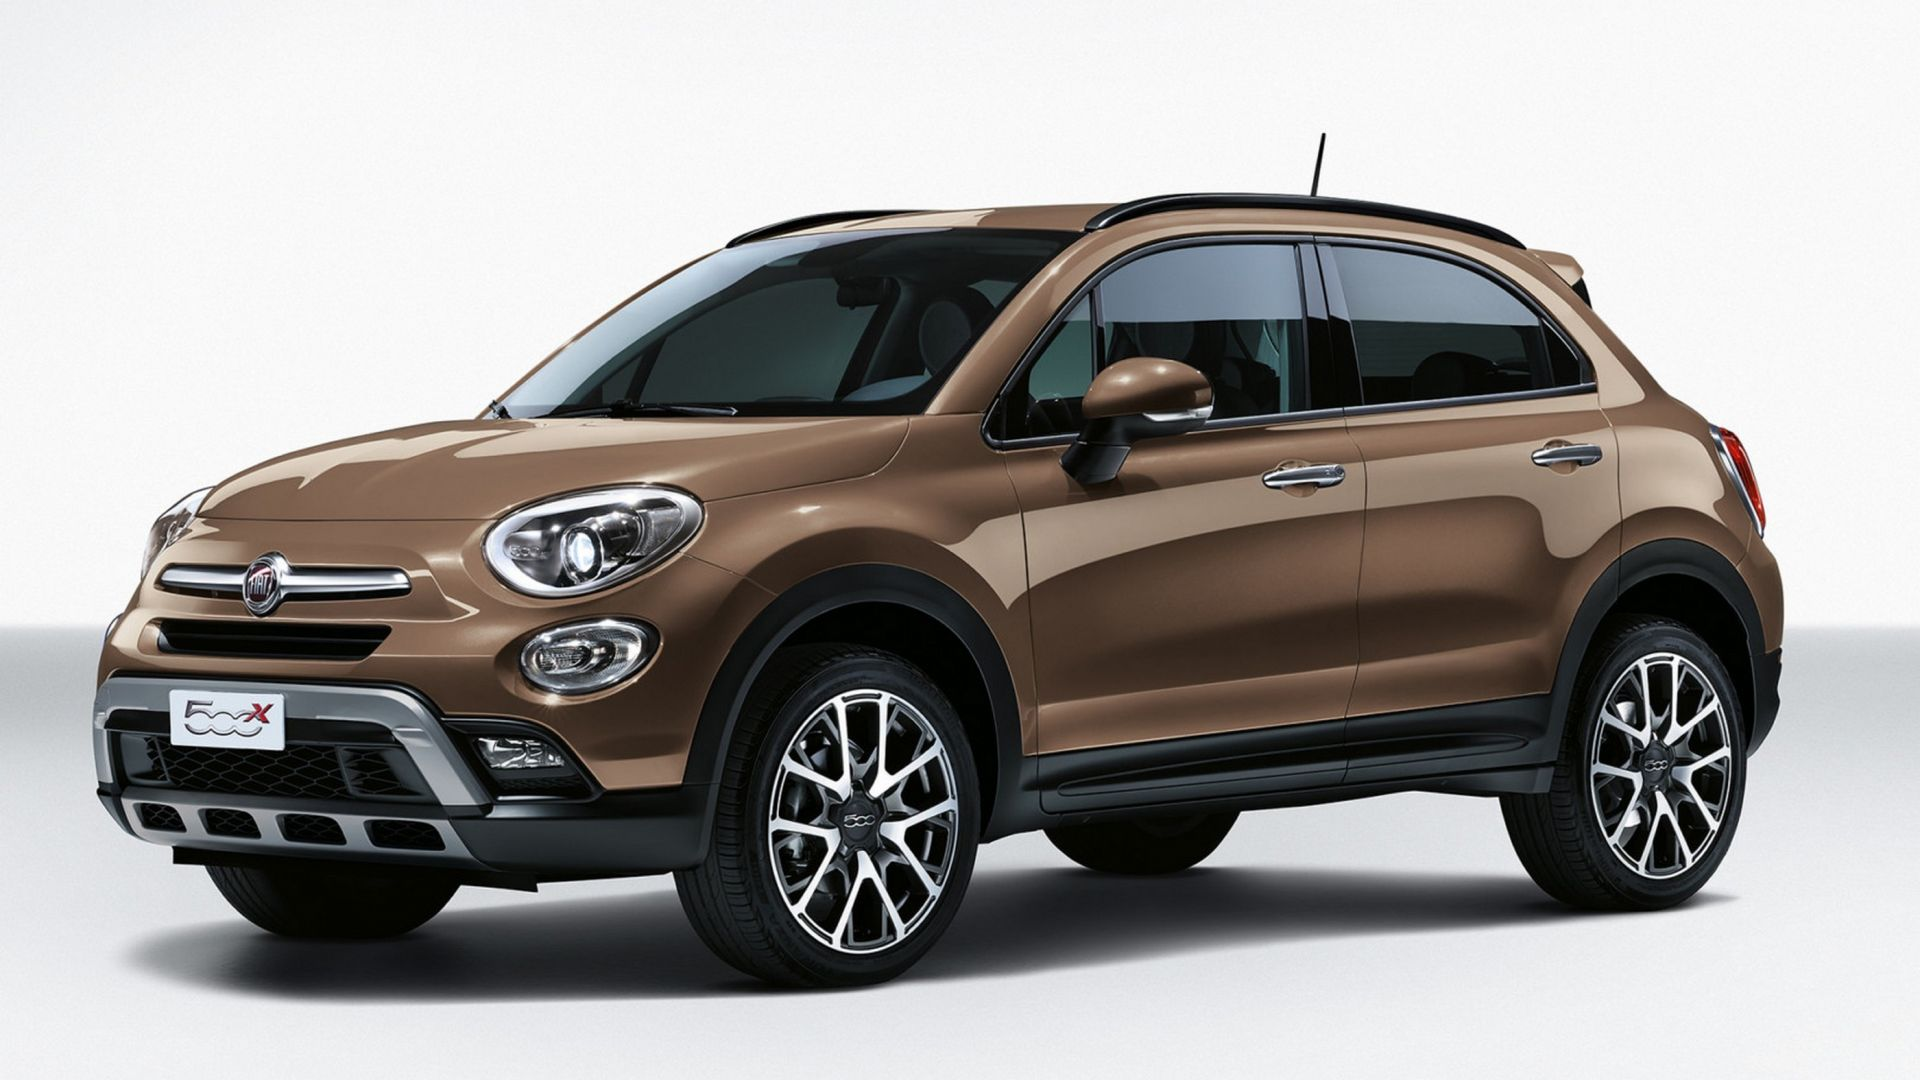 nuova fiat 500x restyling my2018 ecco come cambia il suv. Black Bedroom Furniture Sets. Home Design Ideas